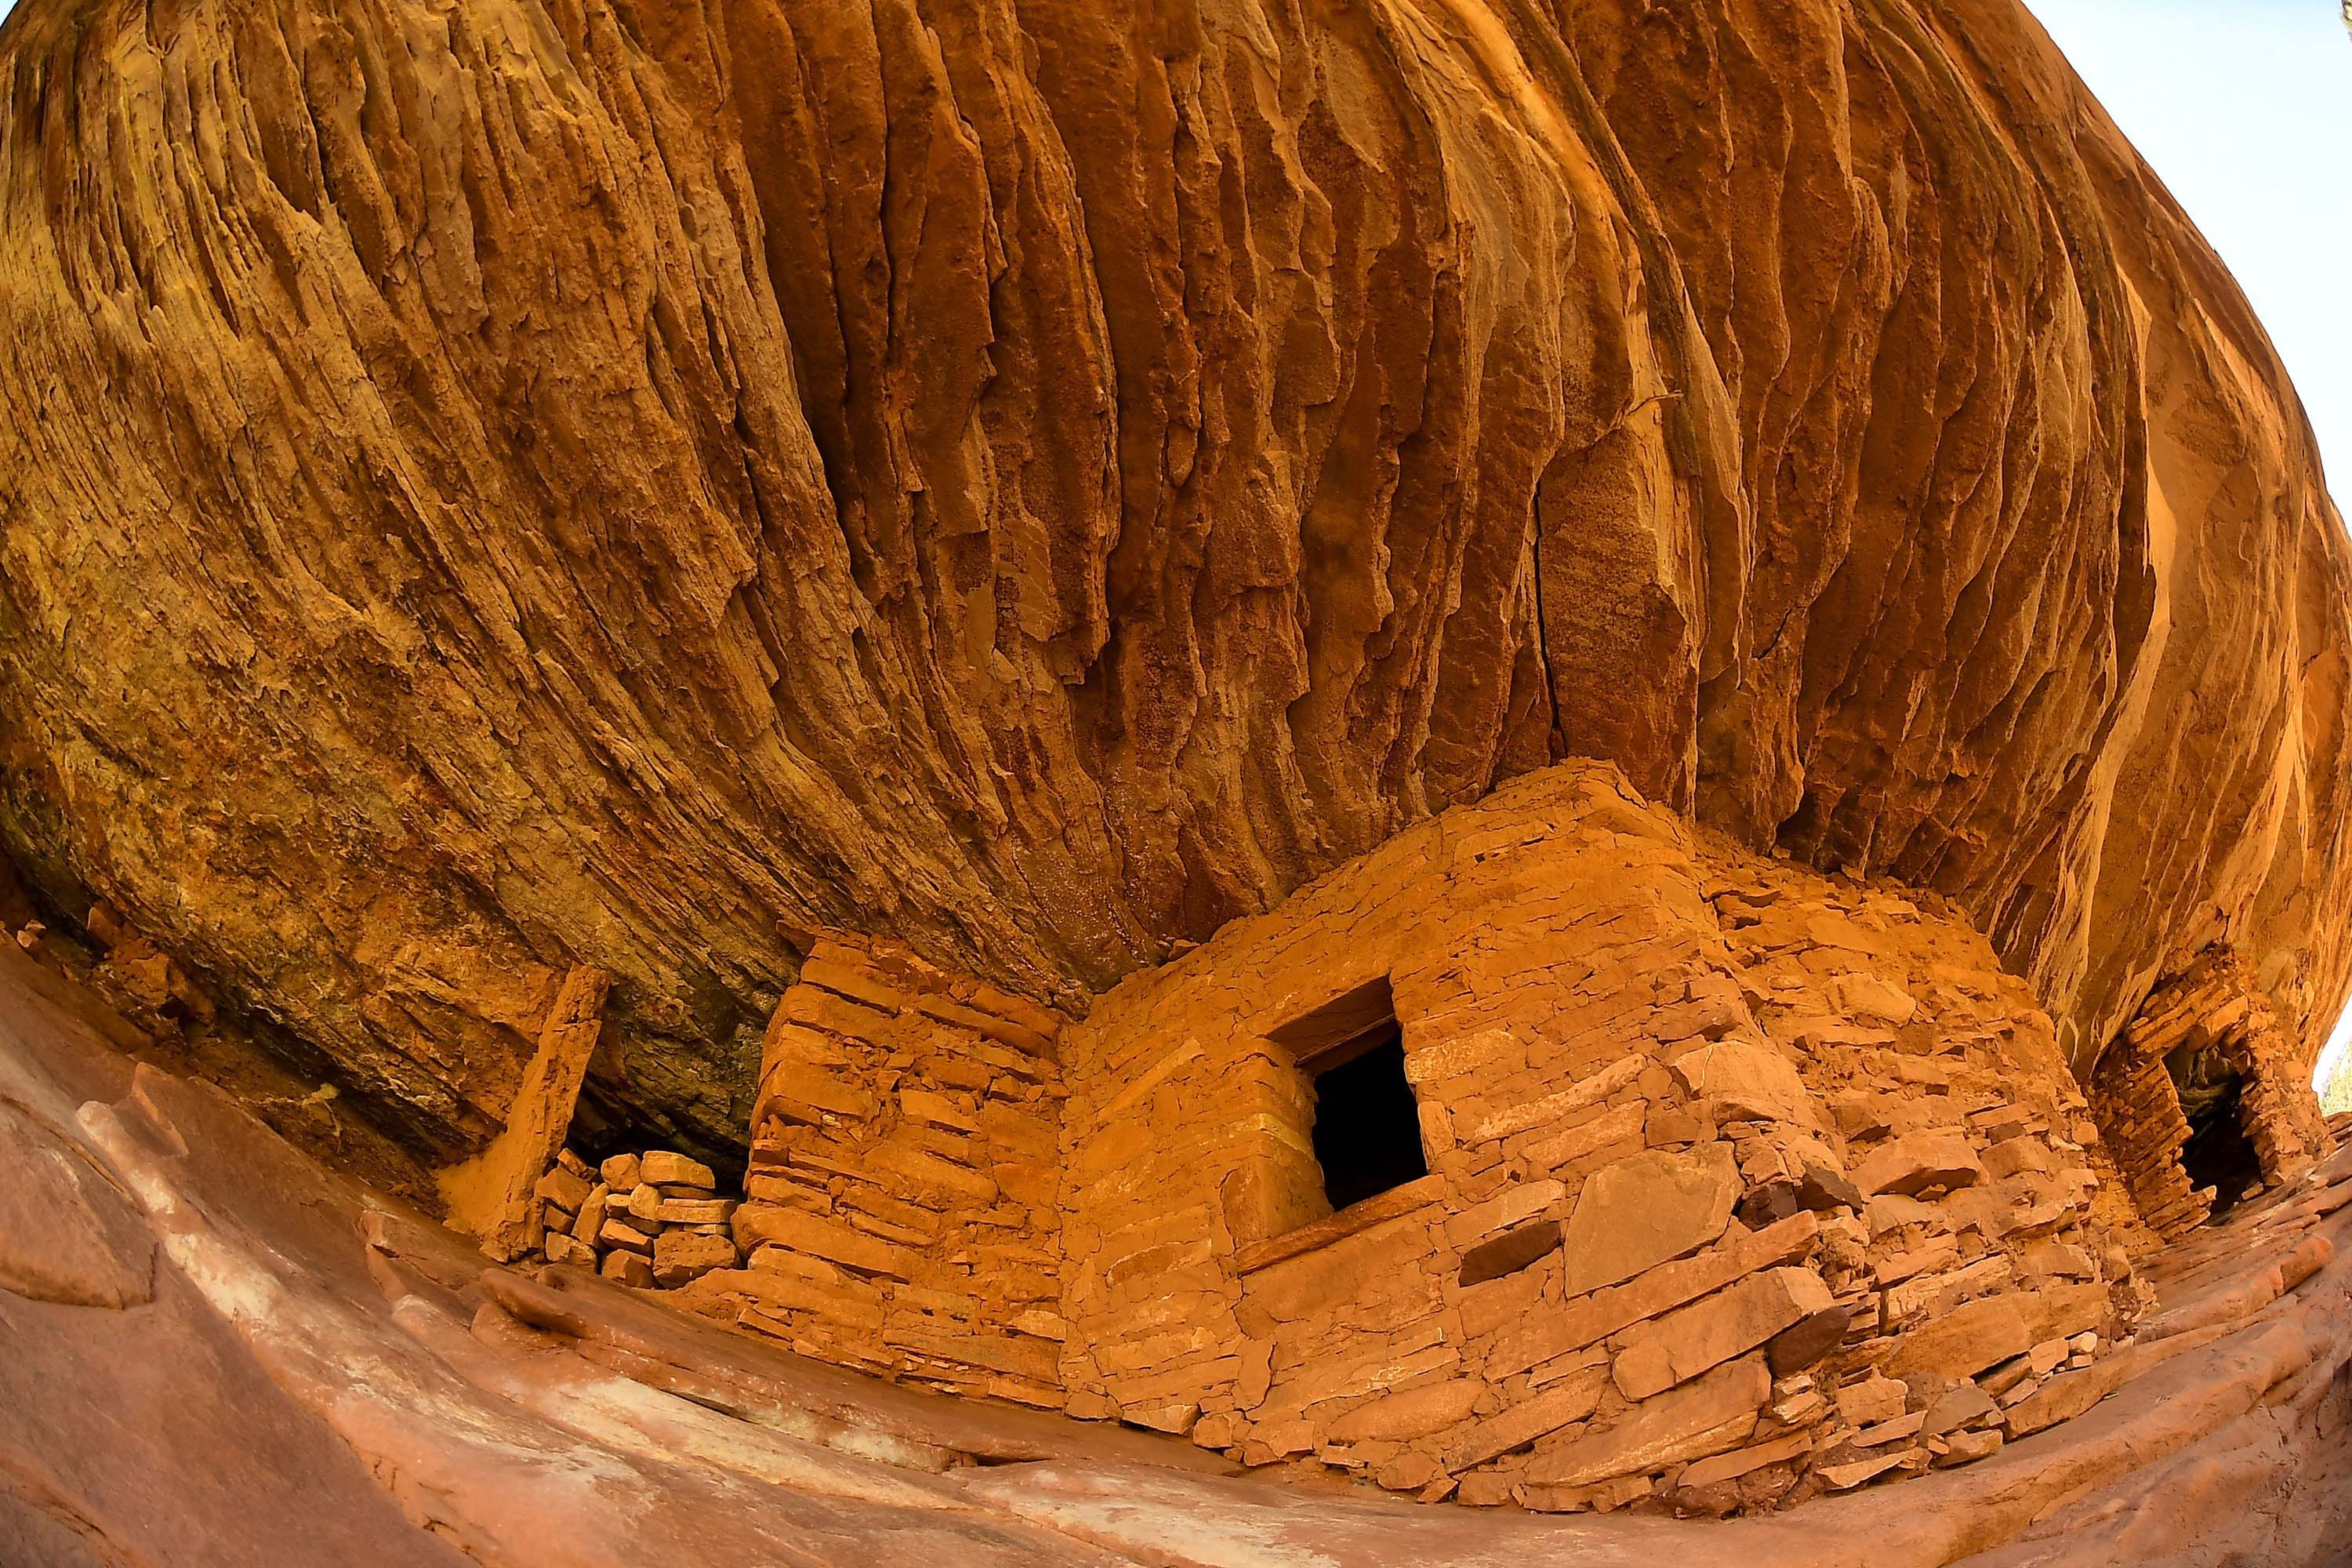 What remains of Bears Ears